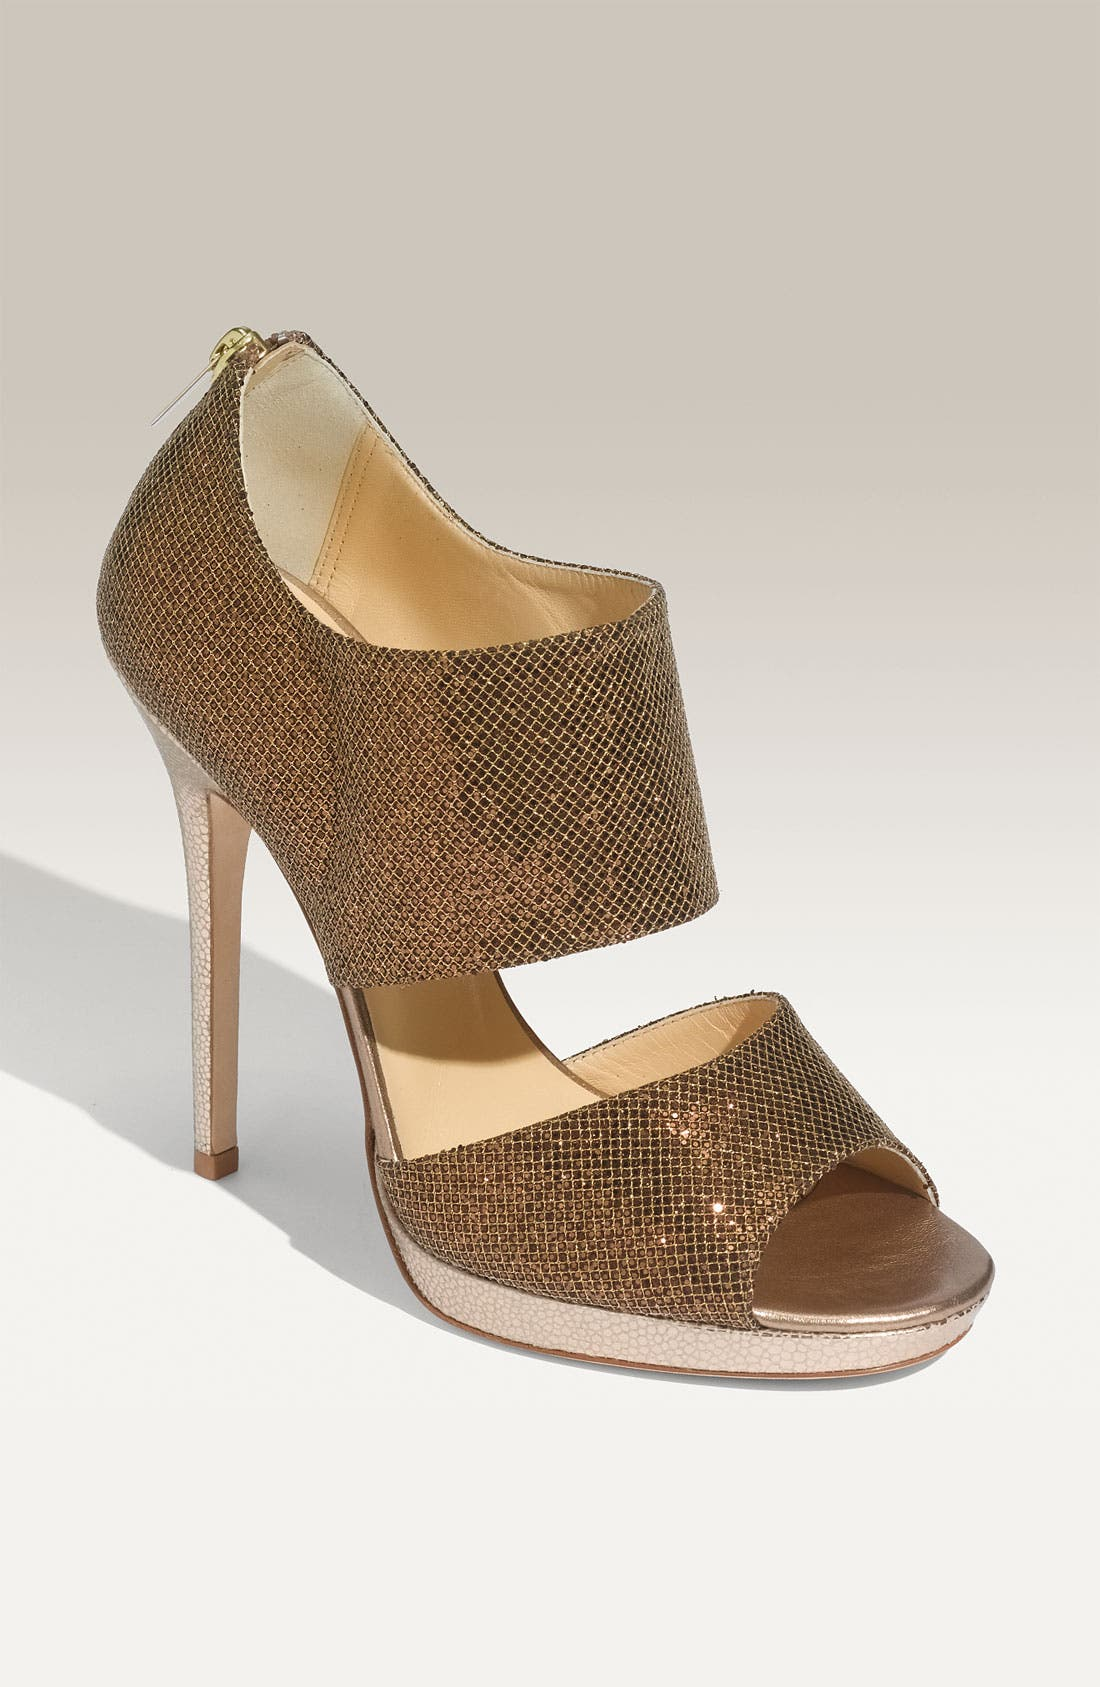 Alternate Image 1 Selected - Jimmy Choo 'Private' Cuff Glitter Fabric Sandal